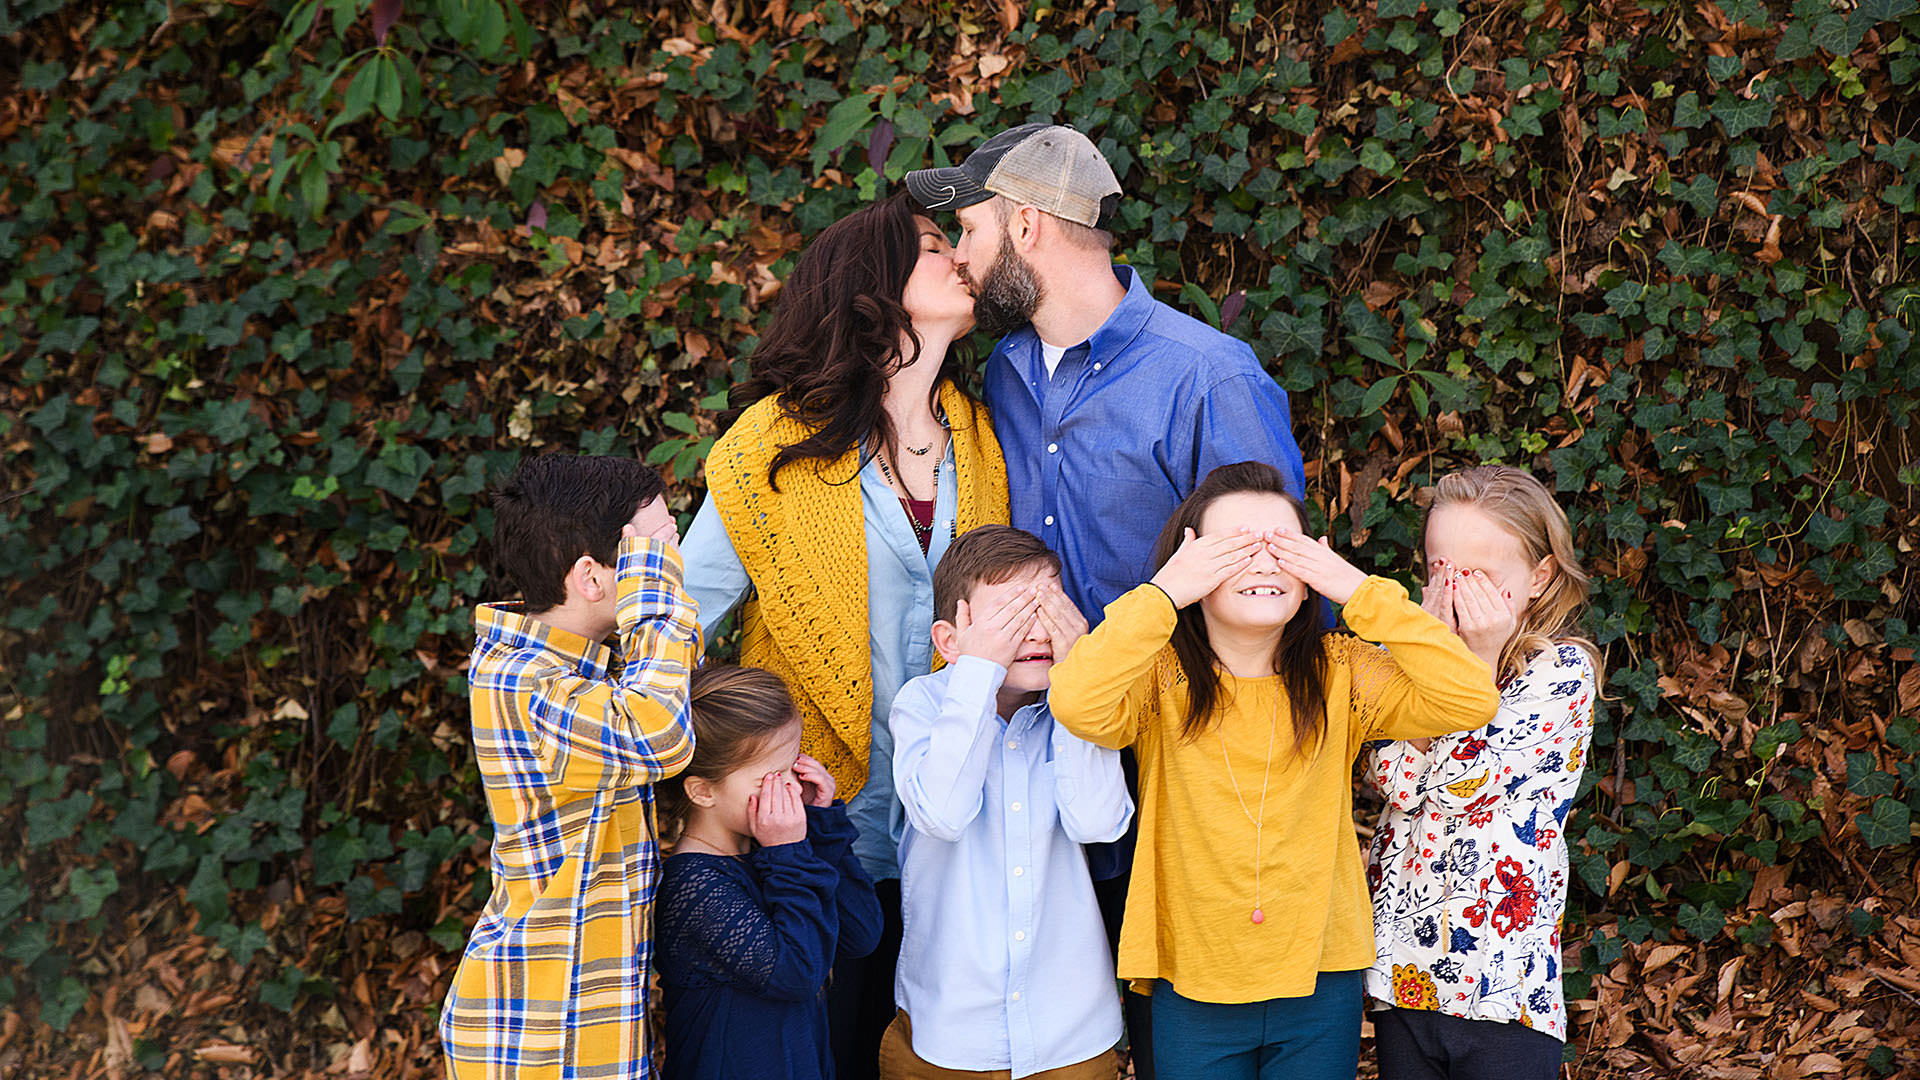 Creative shot of a family where the mom and dad are kissing while the children are holding their eyes shut.